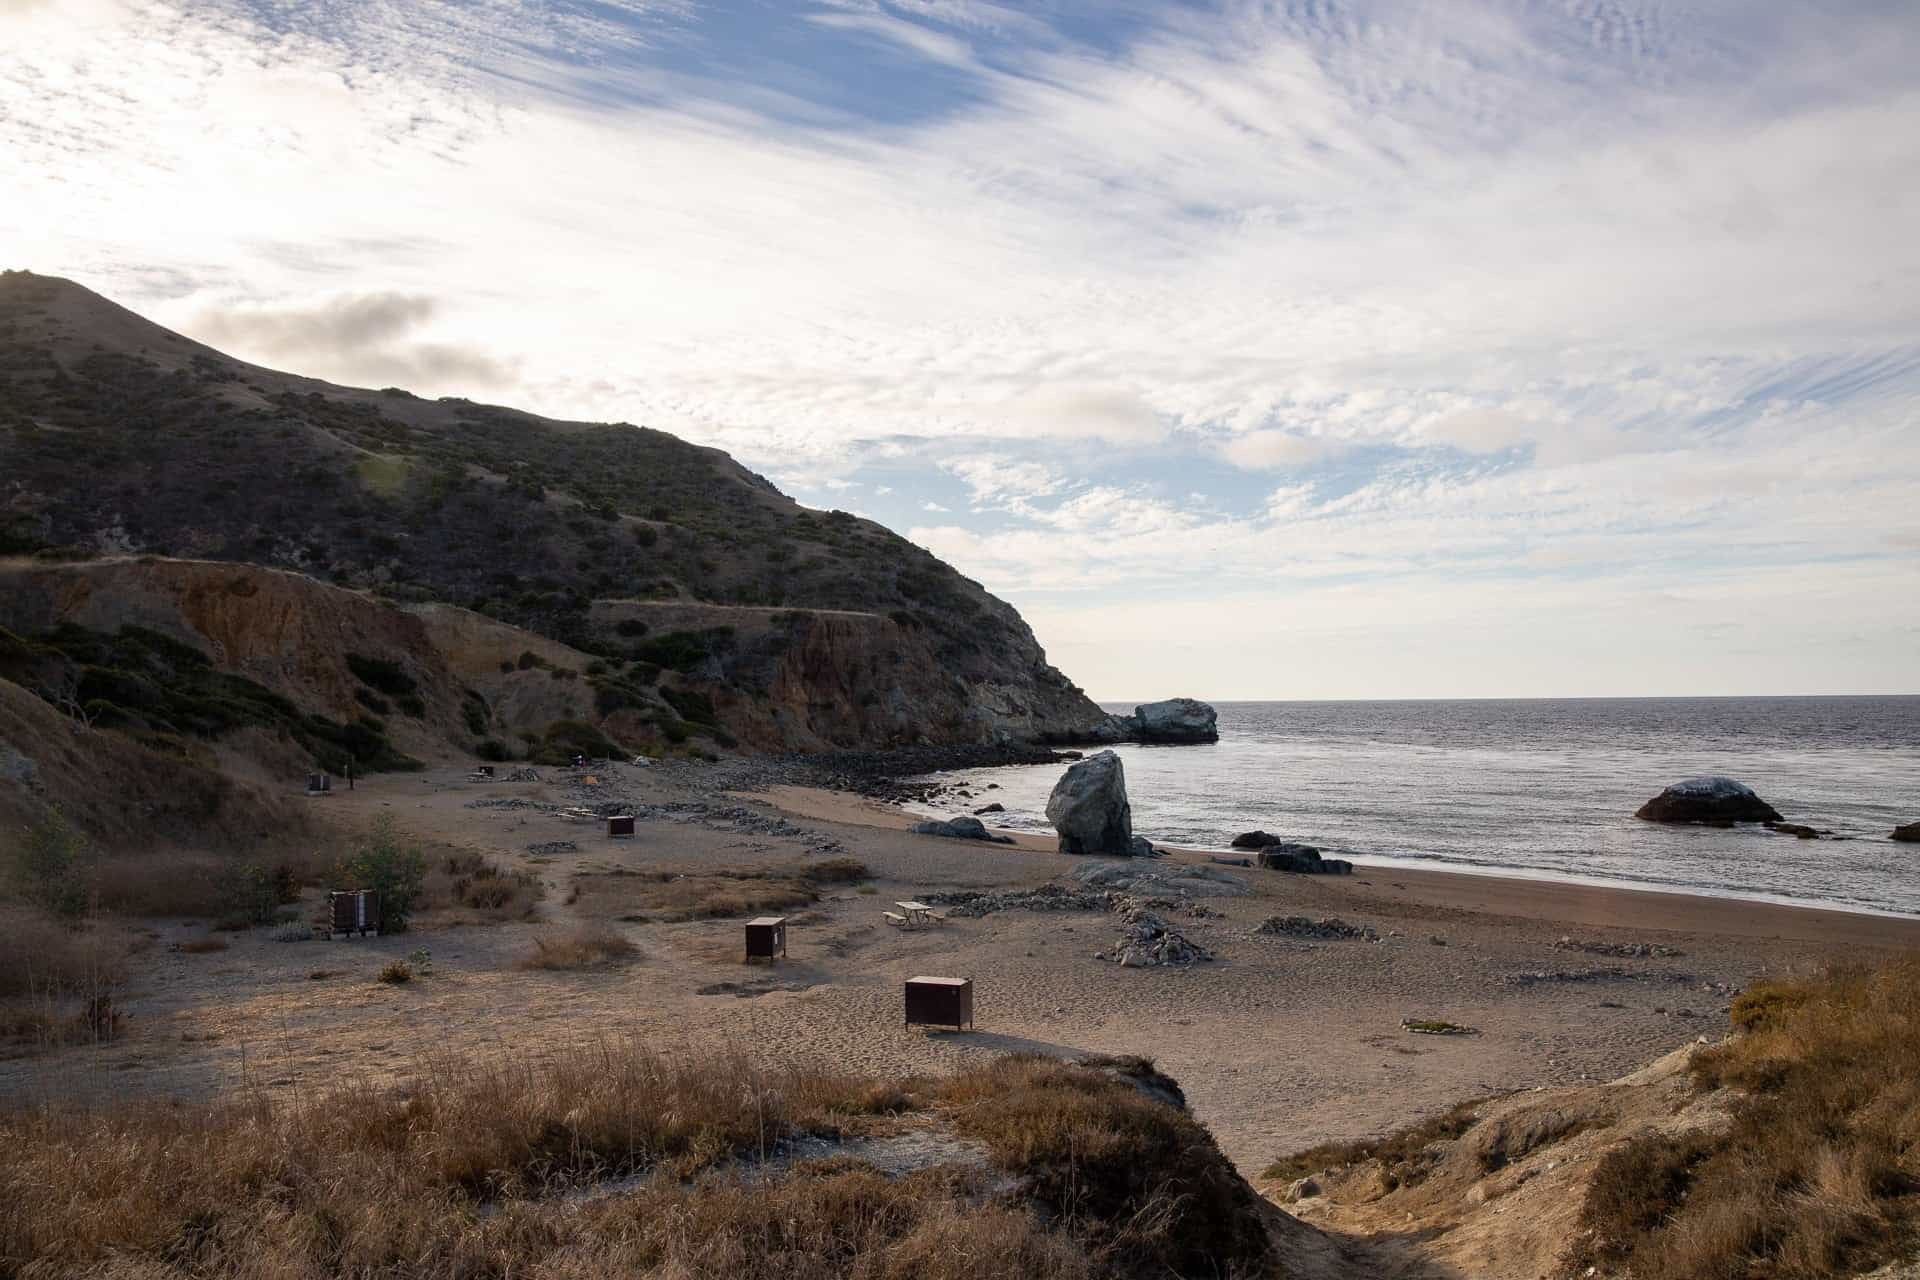 Parson's Landing //Plan a backpacking trip on the Trans-Catalina Trail on Catalina Island with this trail guide with tips on the best campsites, water availability, gear & more